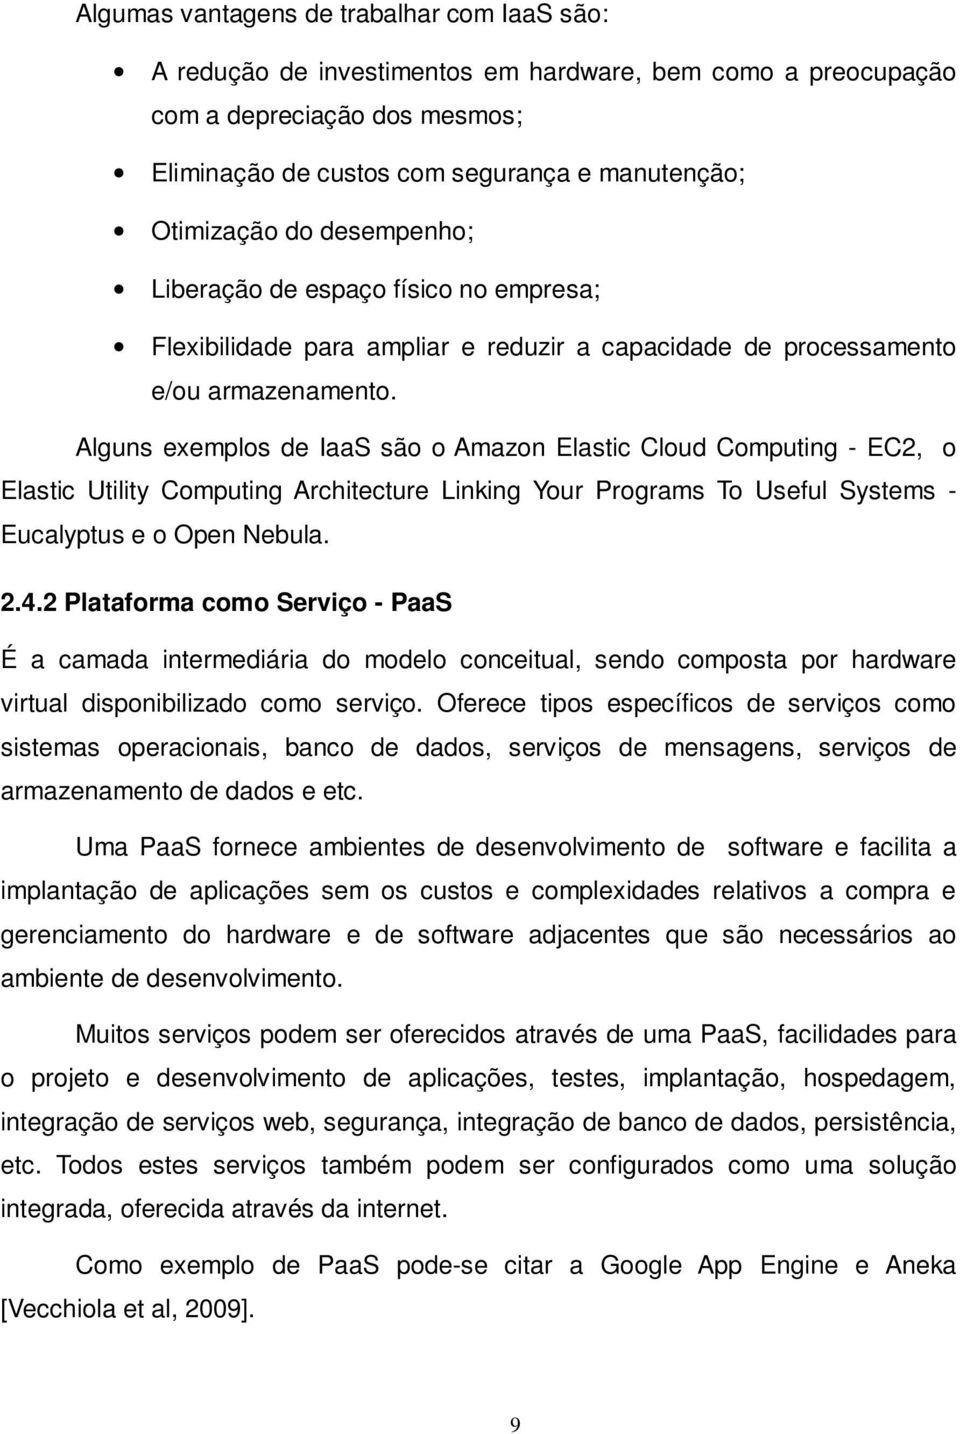 Alguns exemplos de IaaS são o Amazon Elastic Cloud Computing - EC2, o Elastic Utility Computing Architecture Linking Your Programs To Useful Systems - Eucalyptus e o Open Nebula. 2.4.